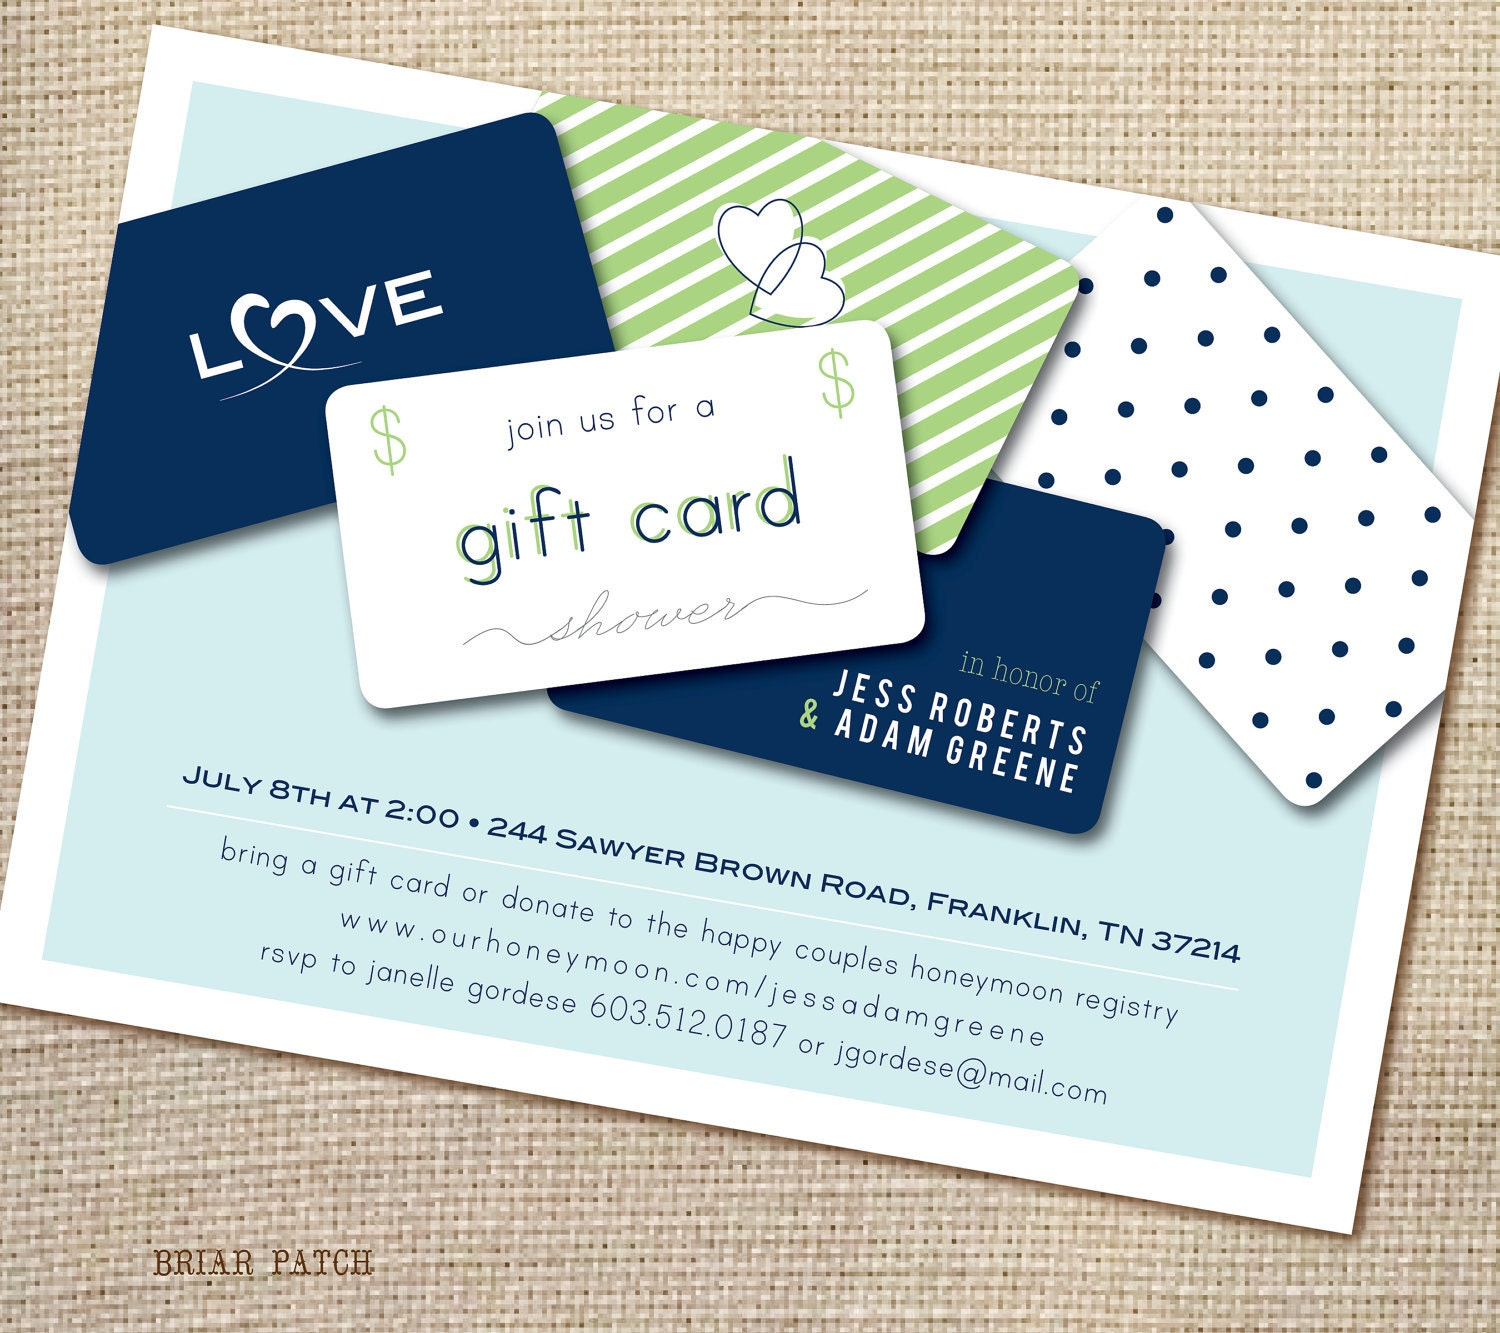 Wedding Gift Card Shower : Delight & Decorum: Bridal Shower: Gift Card Q&A